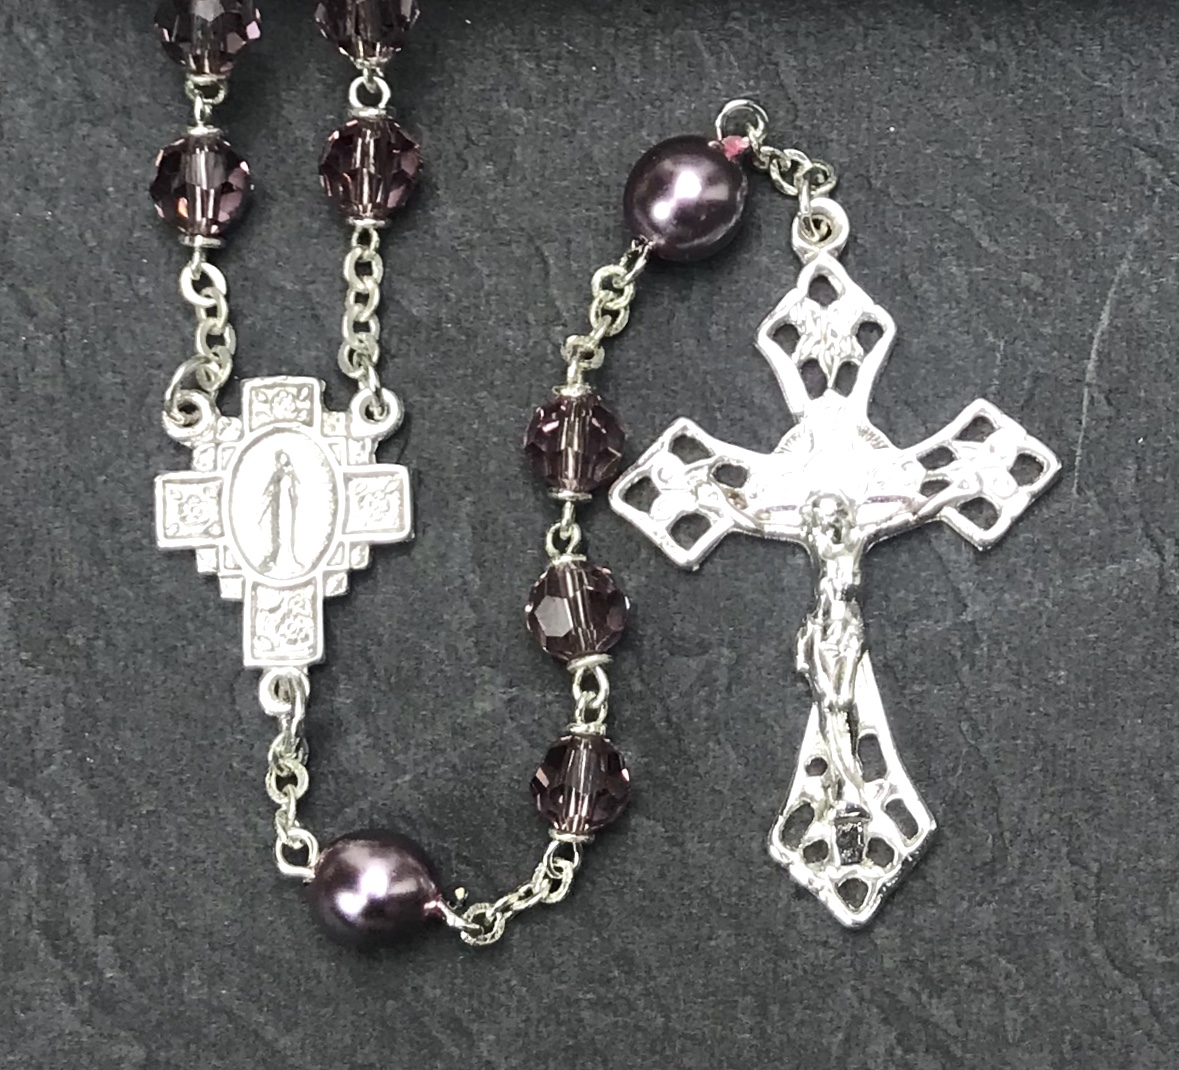 6mm AMETHYST TIN CUT WITH PEARL OUR FATHER BEADS WITH STERLING SILVER PLATE ROSARY BOXED